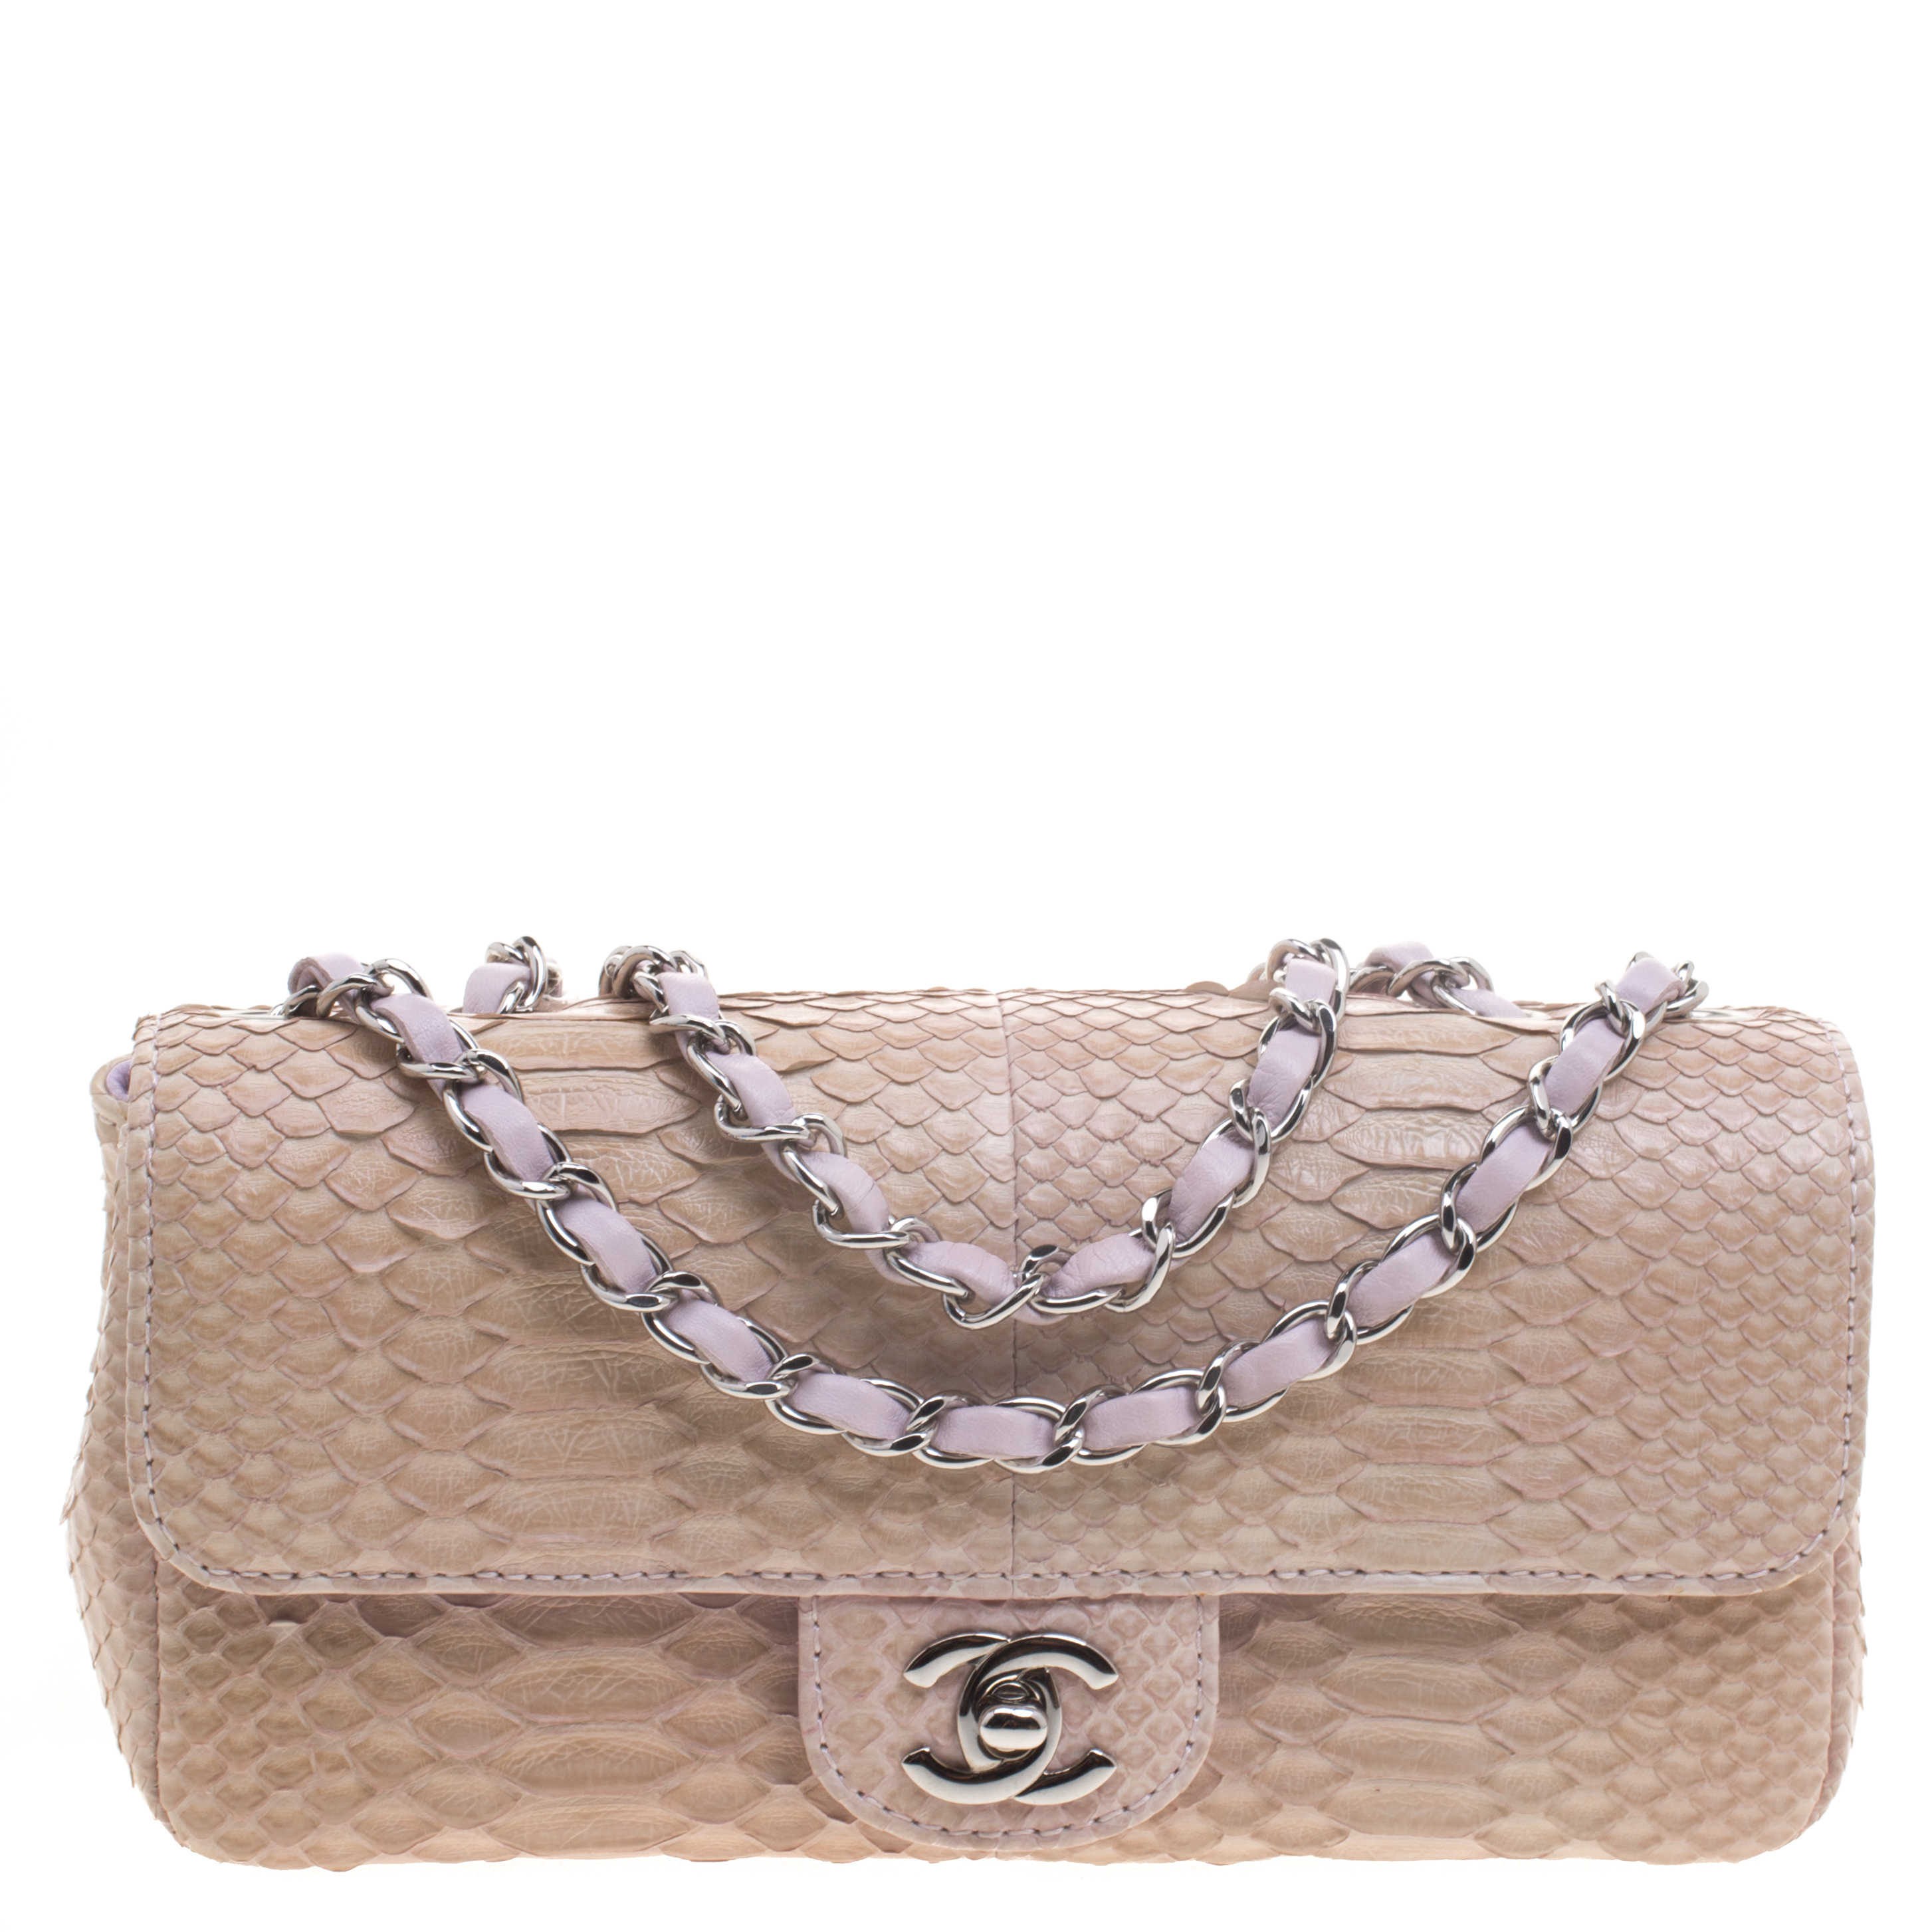 3bcd16db9b4d53 Buy Chanel Lilac Python Small Classic Single Flap Bag 94645 at best ...